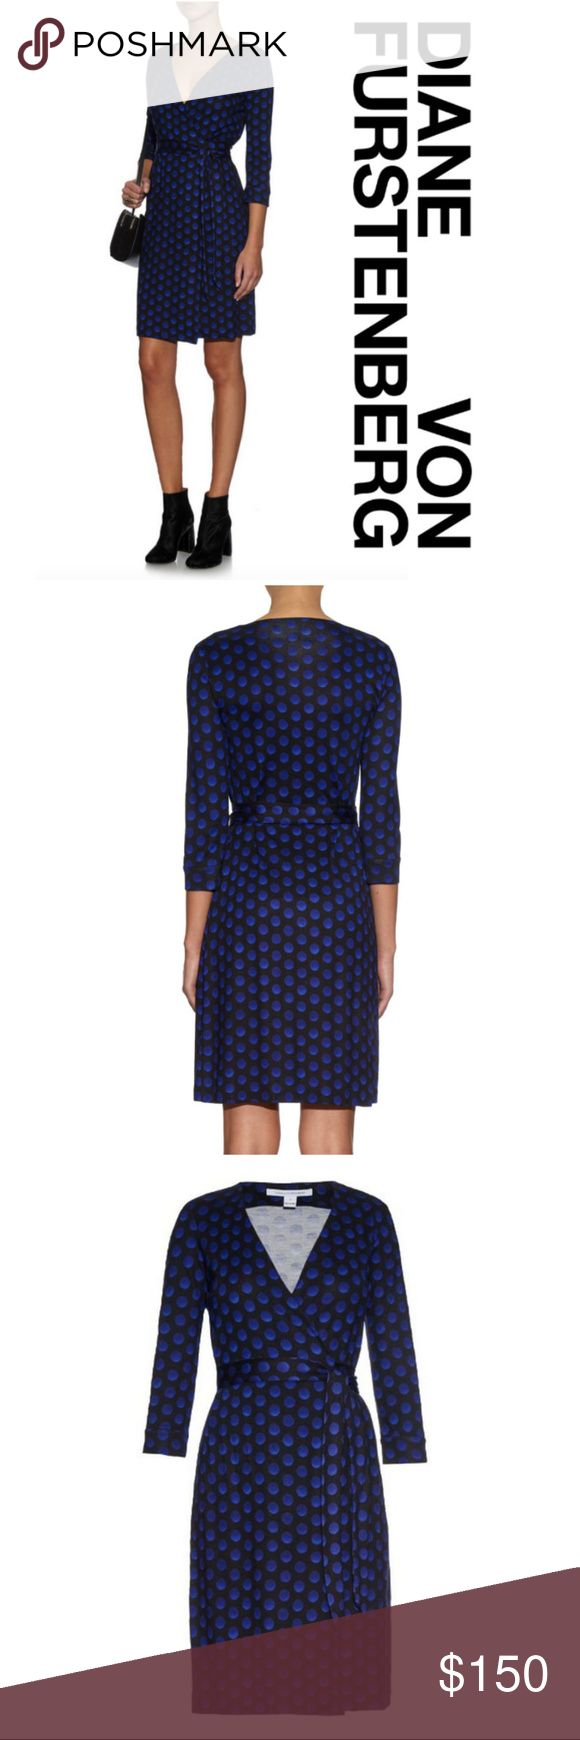 "DVF New Julian Two Silk Jersey Wrap Dress Blue 6 S Brand new with tag, classic Diane von Furstenberg New Julian Two Silk Jersey Wrap Dress. $398 MSRP Size: 6 (appropriate for those who wear size 4, if you want to be more modest in front opening)  Color: Blue/Black ""Daze Dot Small"" print (the blue dots have cool ombré effect) Fabric: More faithful to the DVF original wrap dress, 100% silk jersey (many recent Julian dresses are not!)  - Classic, true crossover wrap style with self-tying waist…"